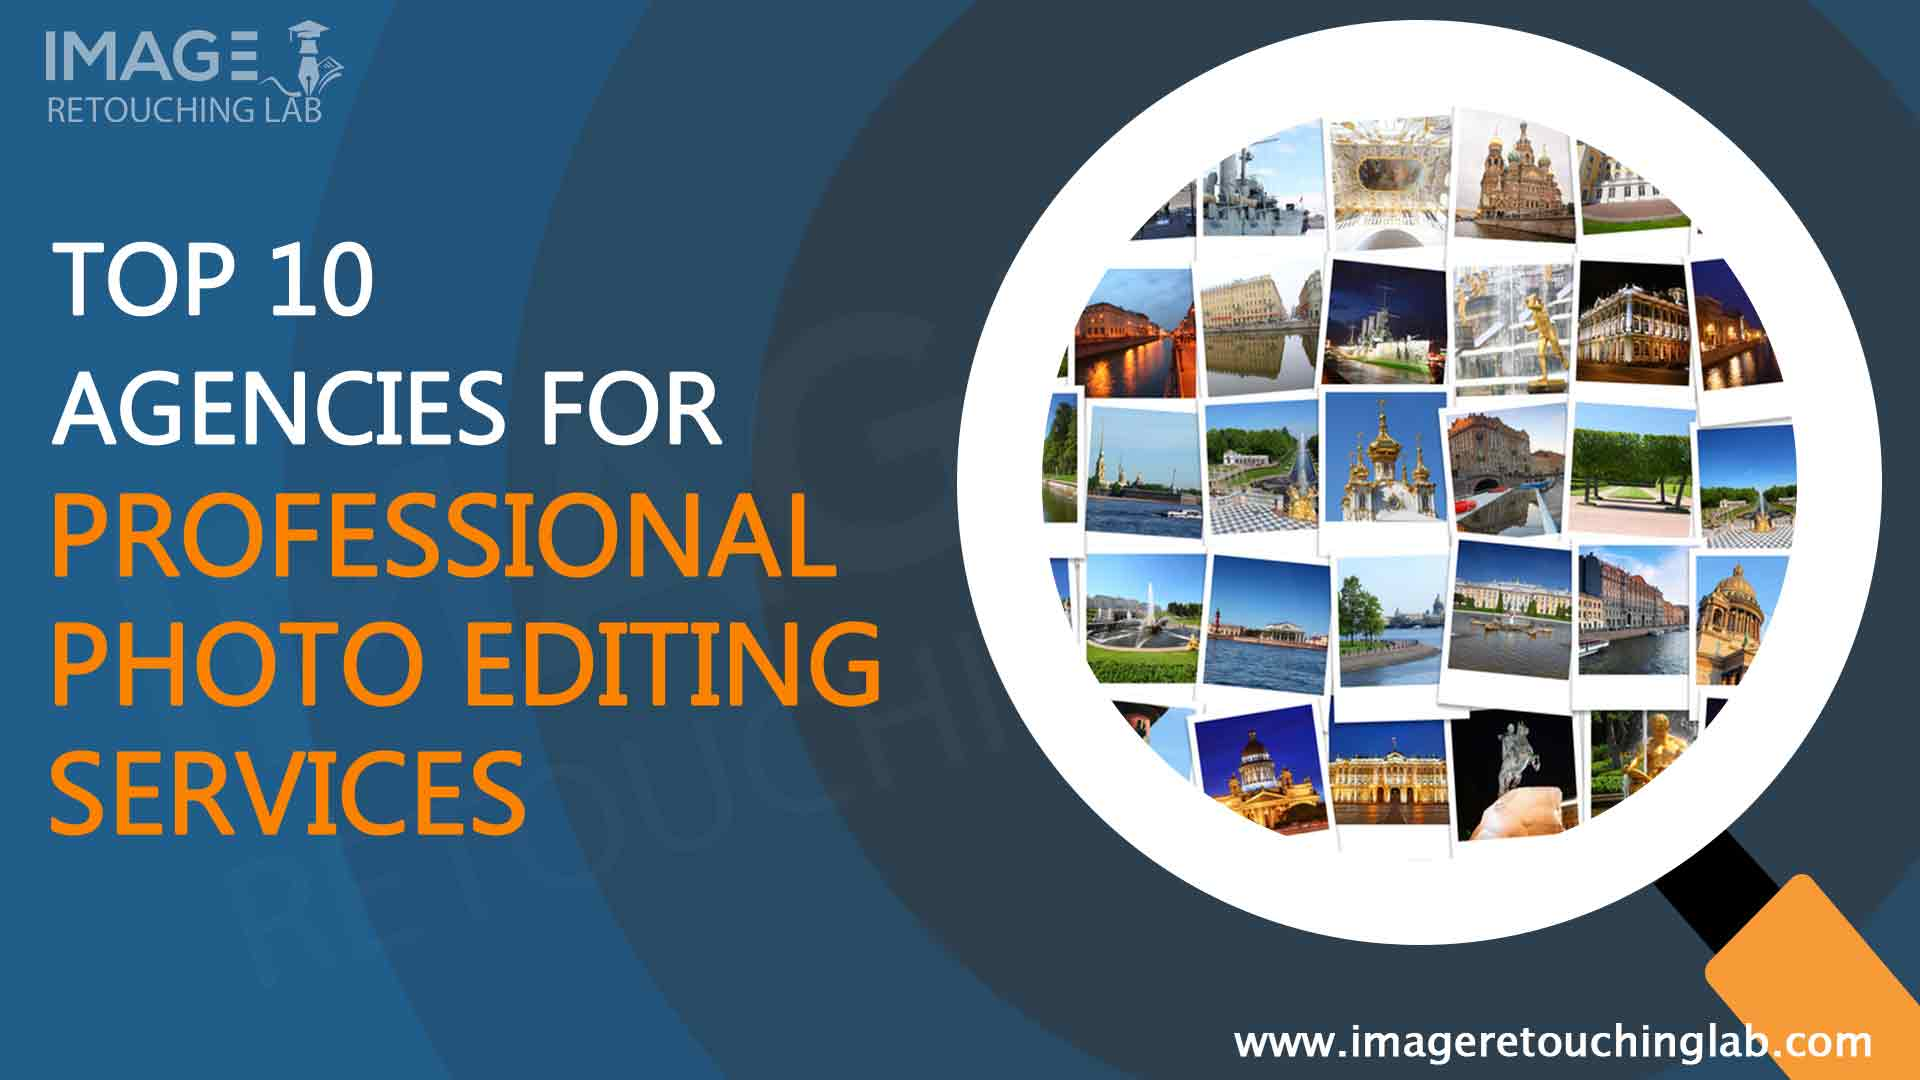 Top 10 Agencies for Professional Photo Editing Service